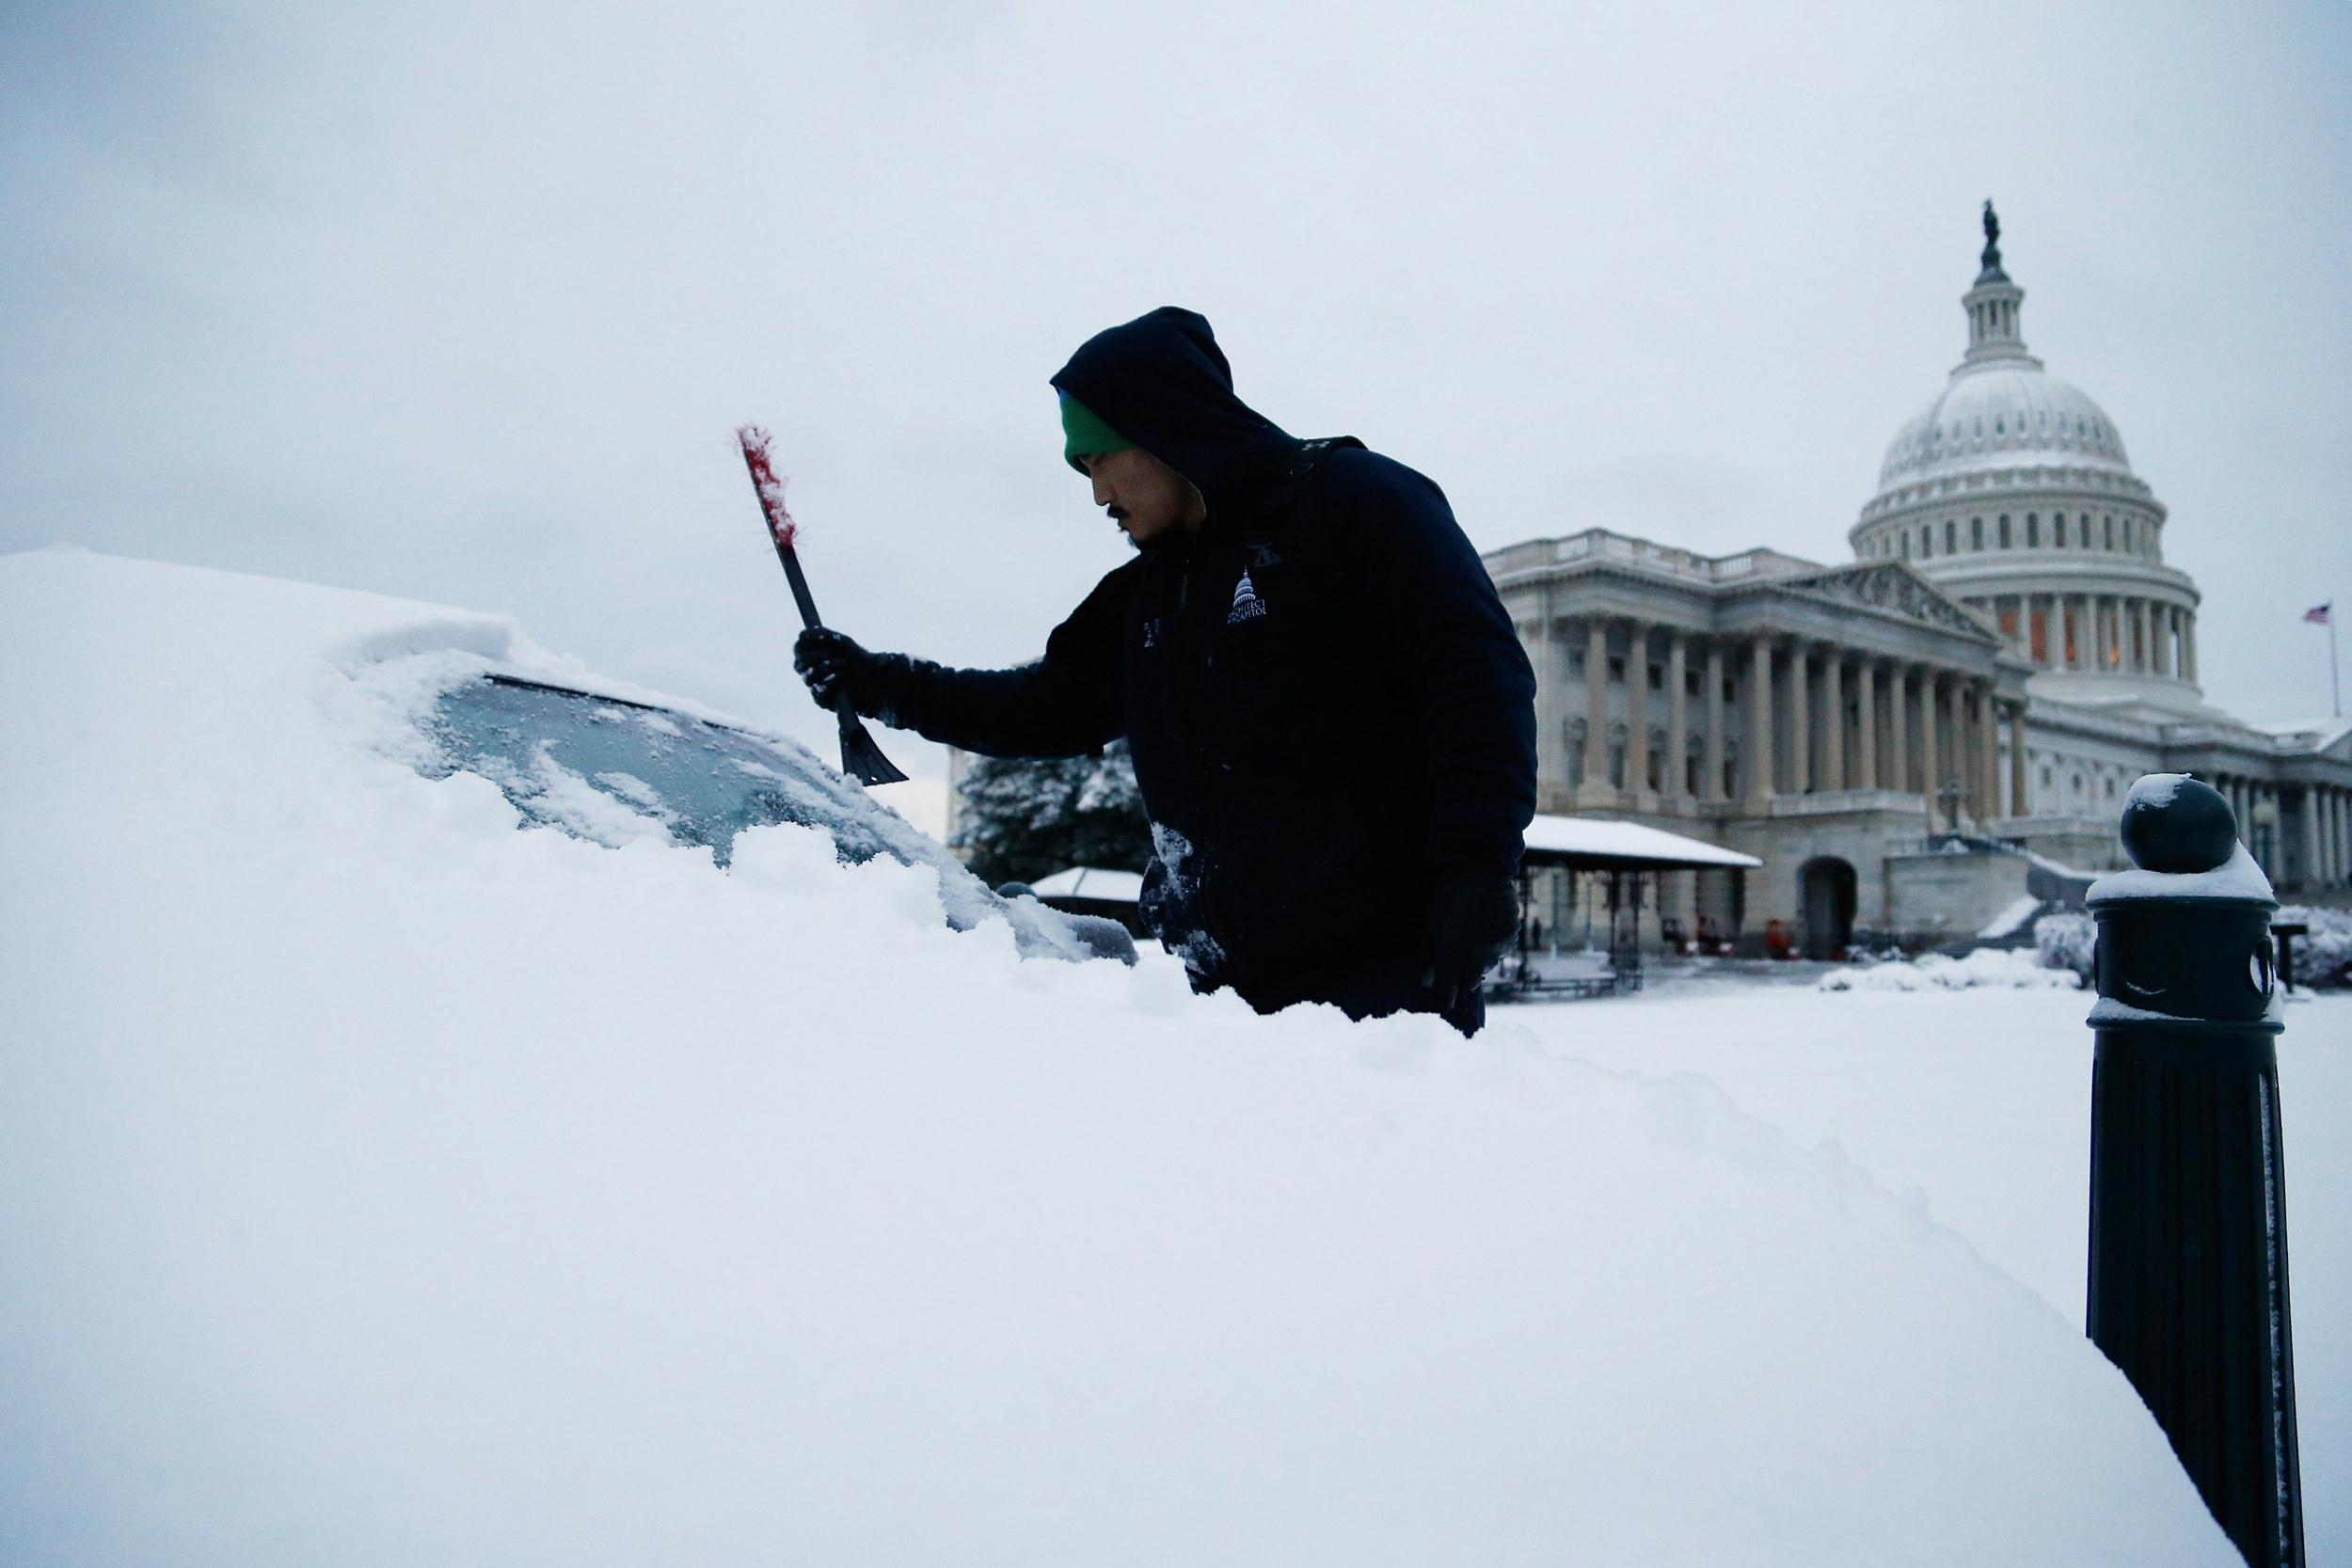 Image: After finishing an overnight shift, a worker clears the snow from his car at the U.S. Capitol in Washington